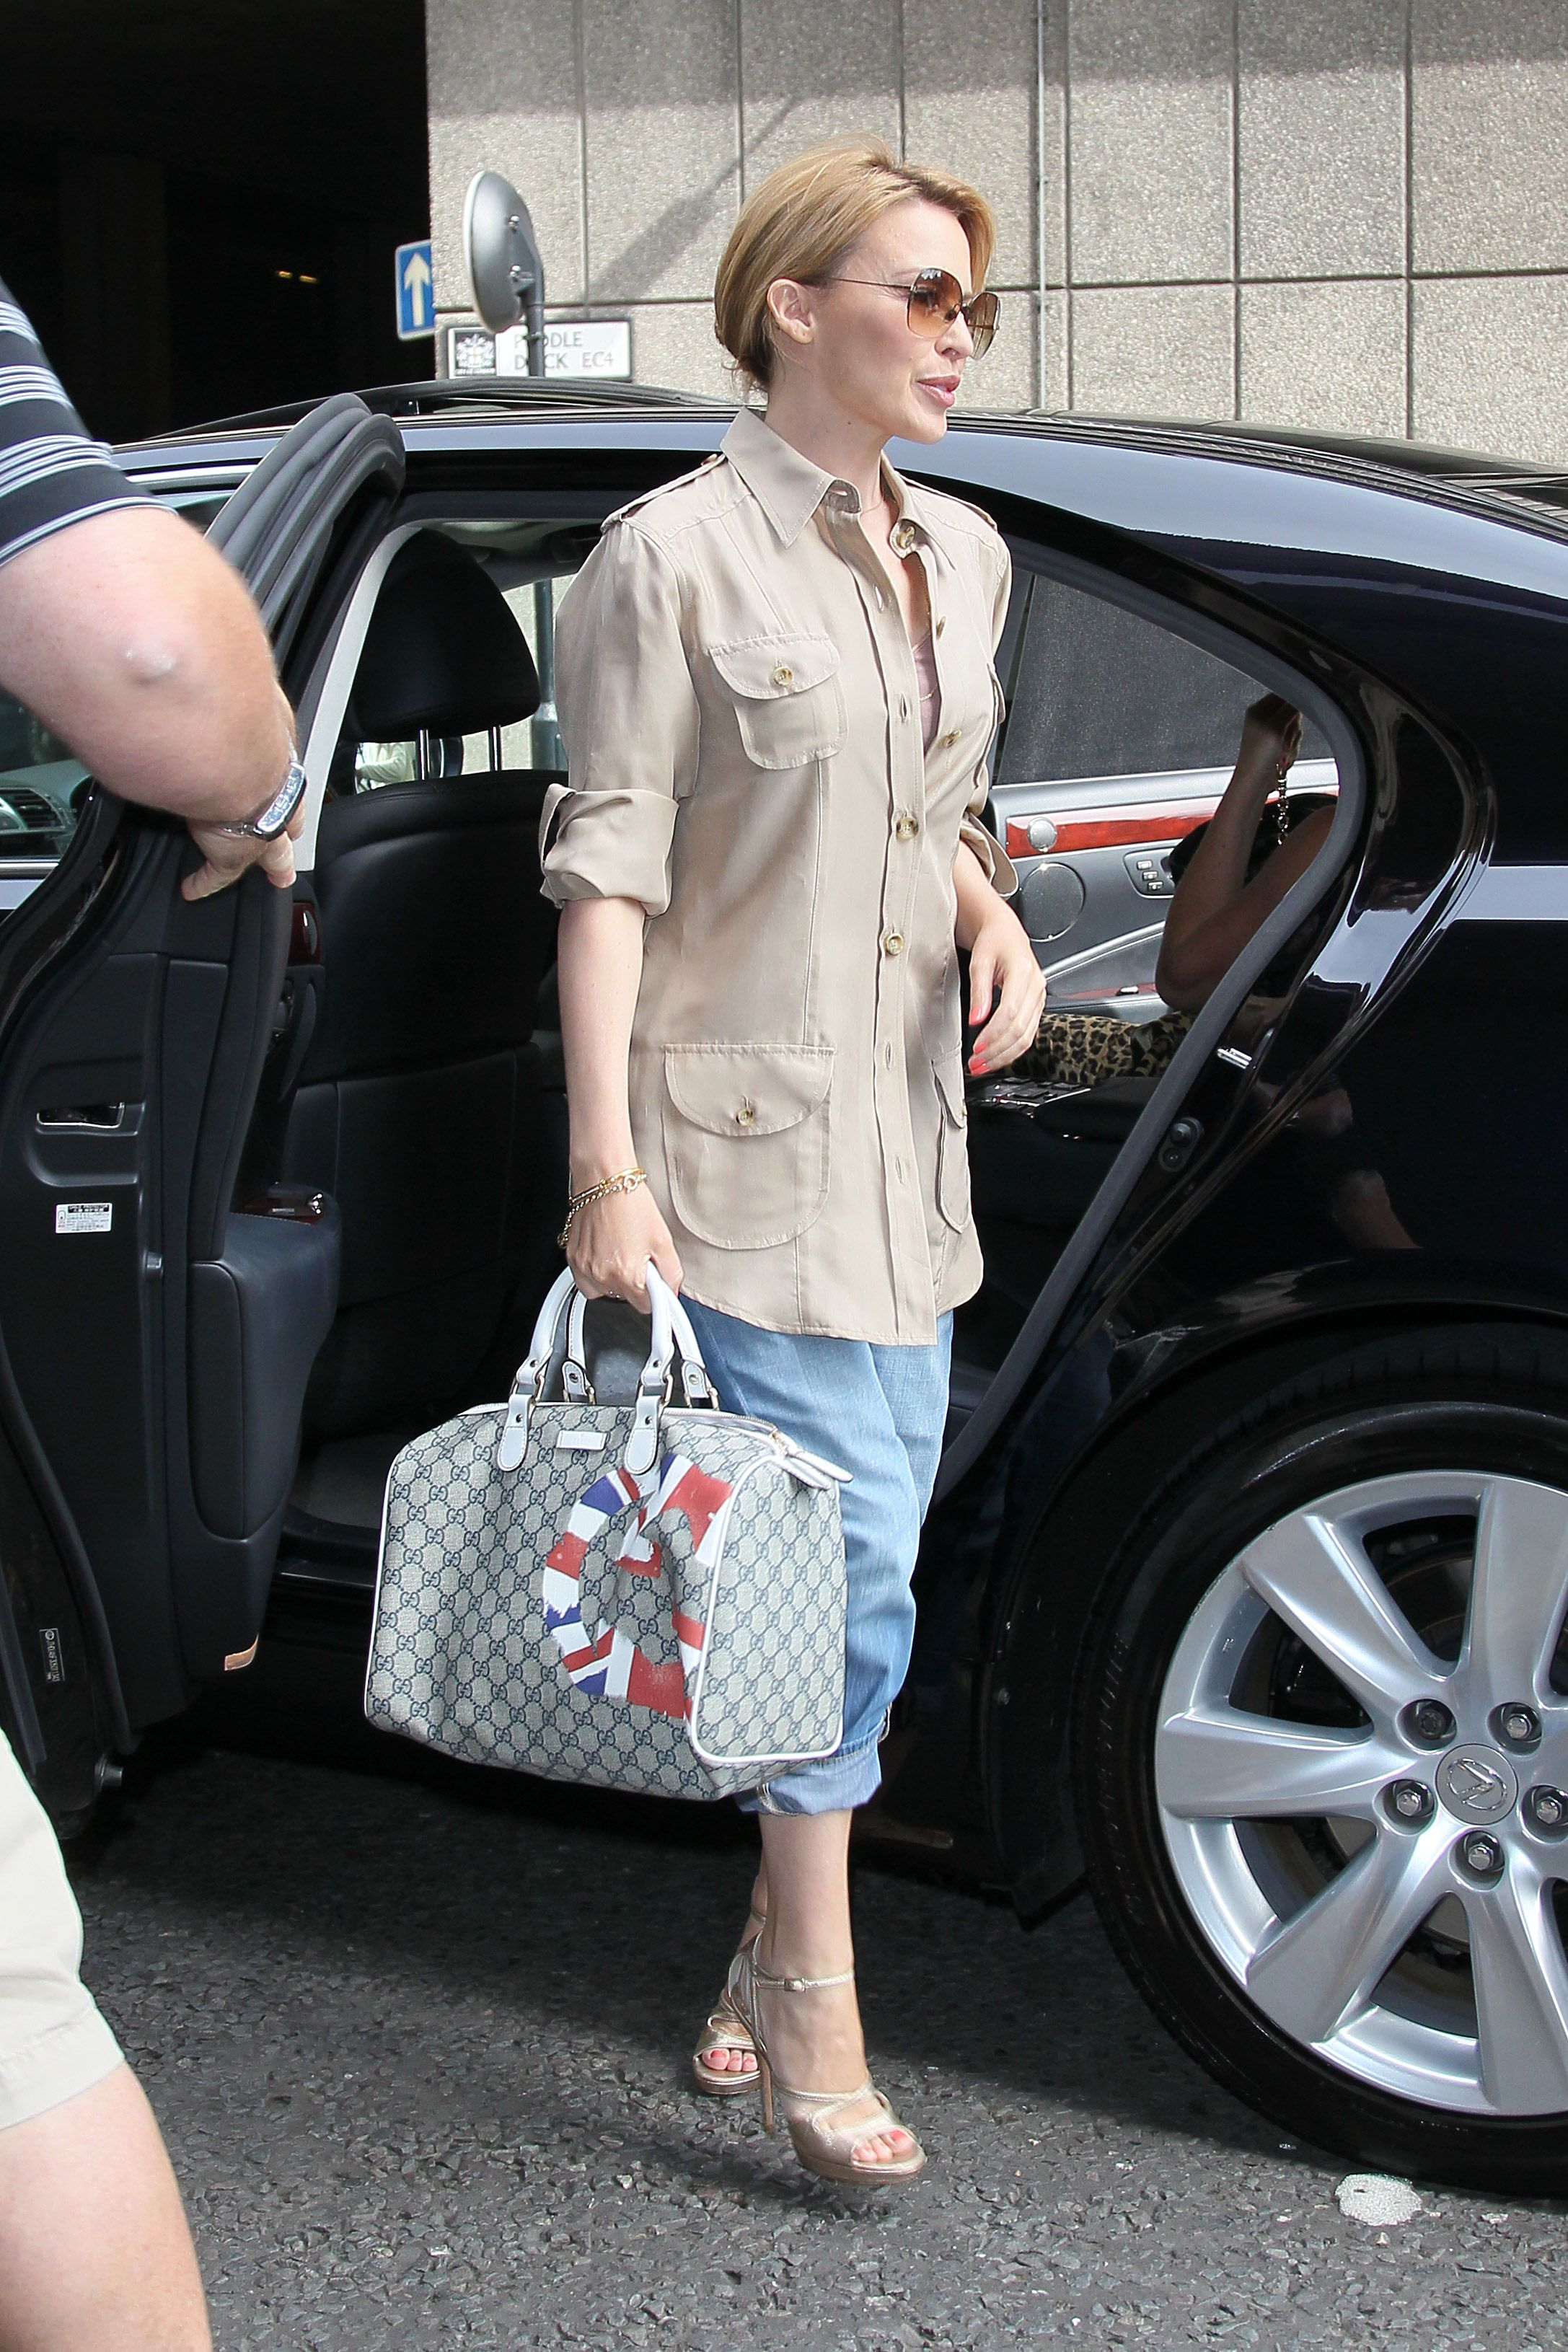 gucci uk. kylie minogue carried a gucci uk gg flag collection boston bag in beige and ebony uk